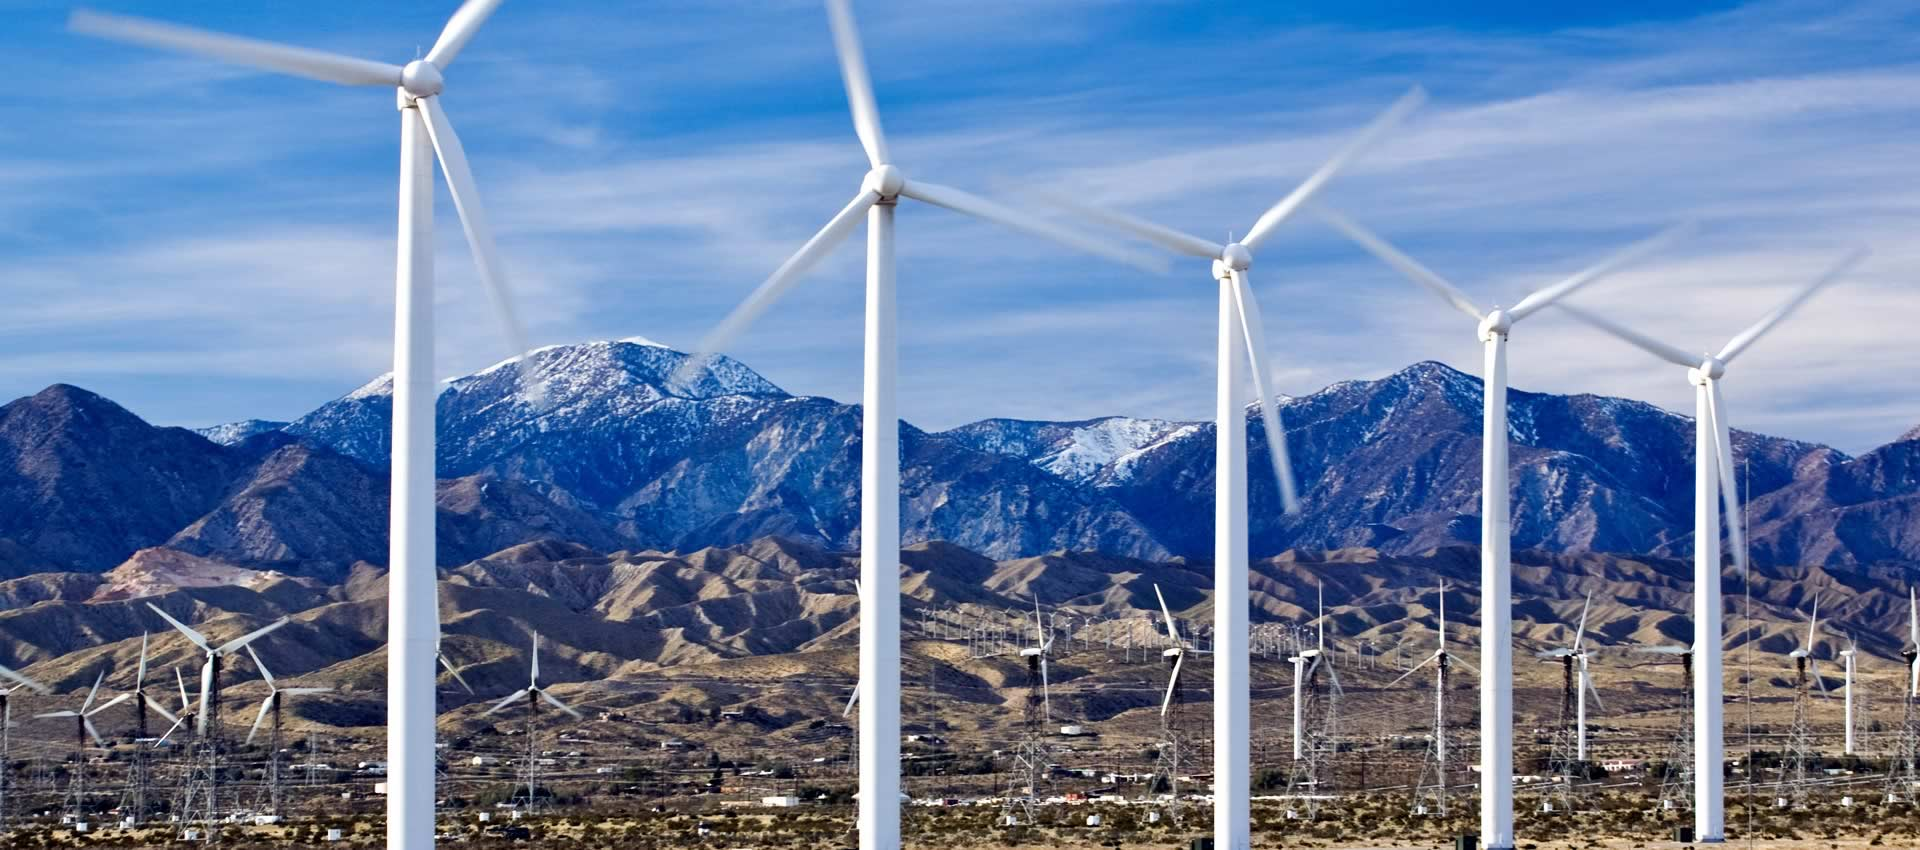 palm-springs-wind-generators